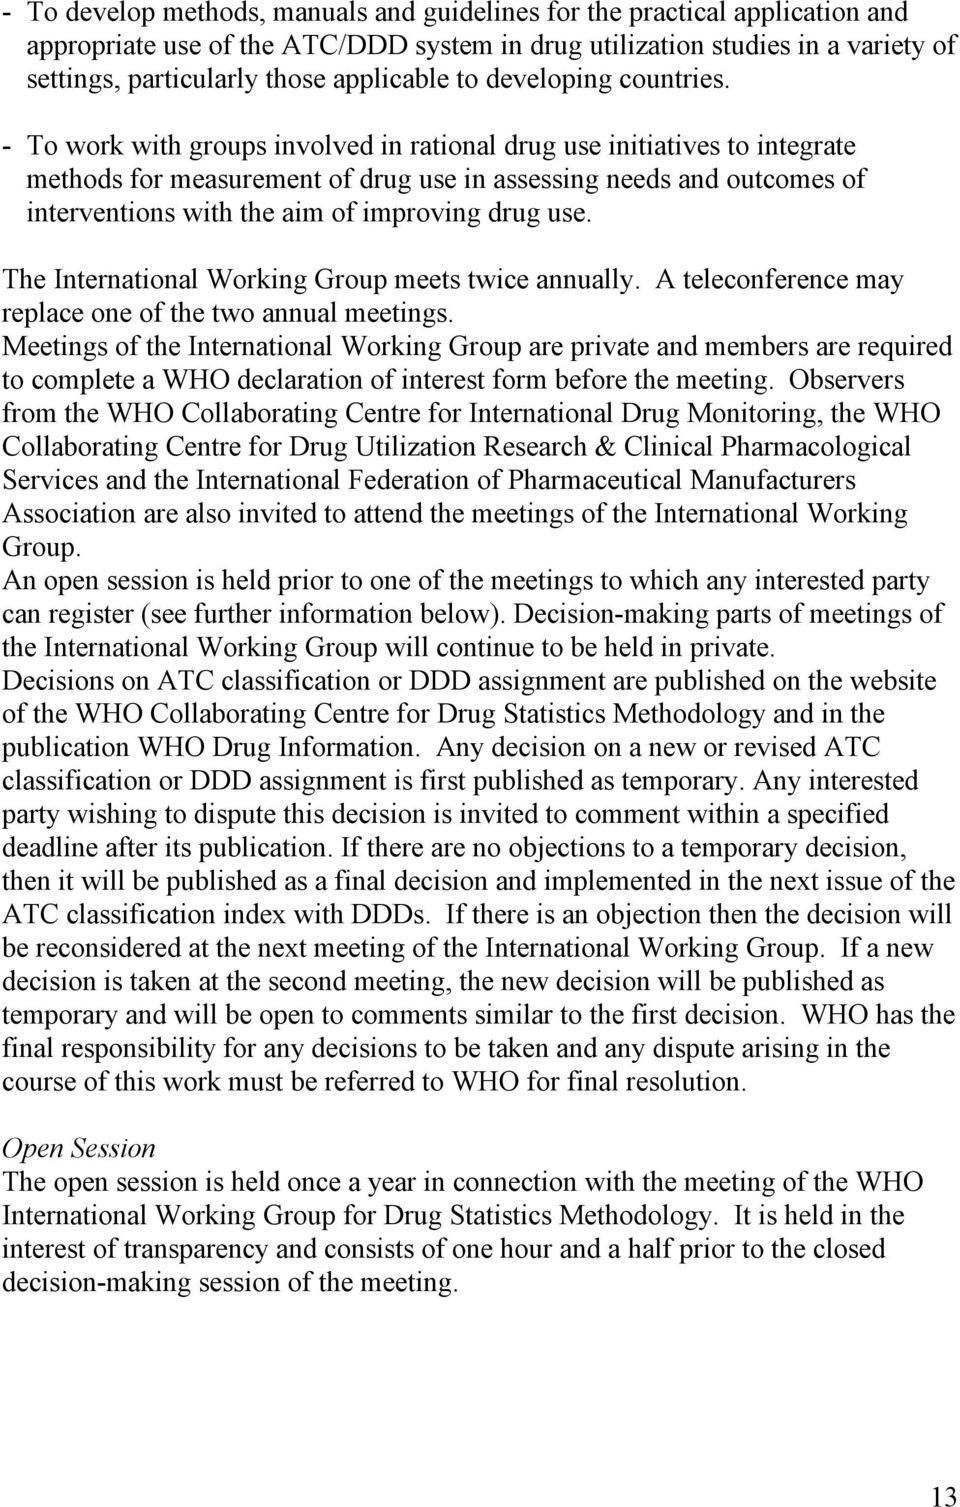 - To work with groups involved in rational drug use initiatives to integrate methods for measurement of drug use in assessing needs and outcomes of interventions with the aim of improving drug use.